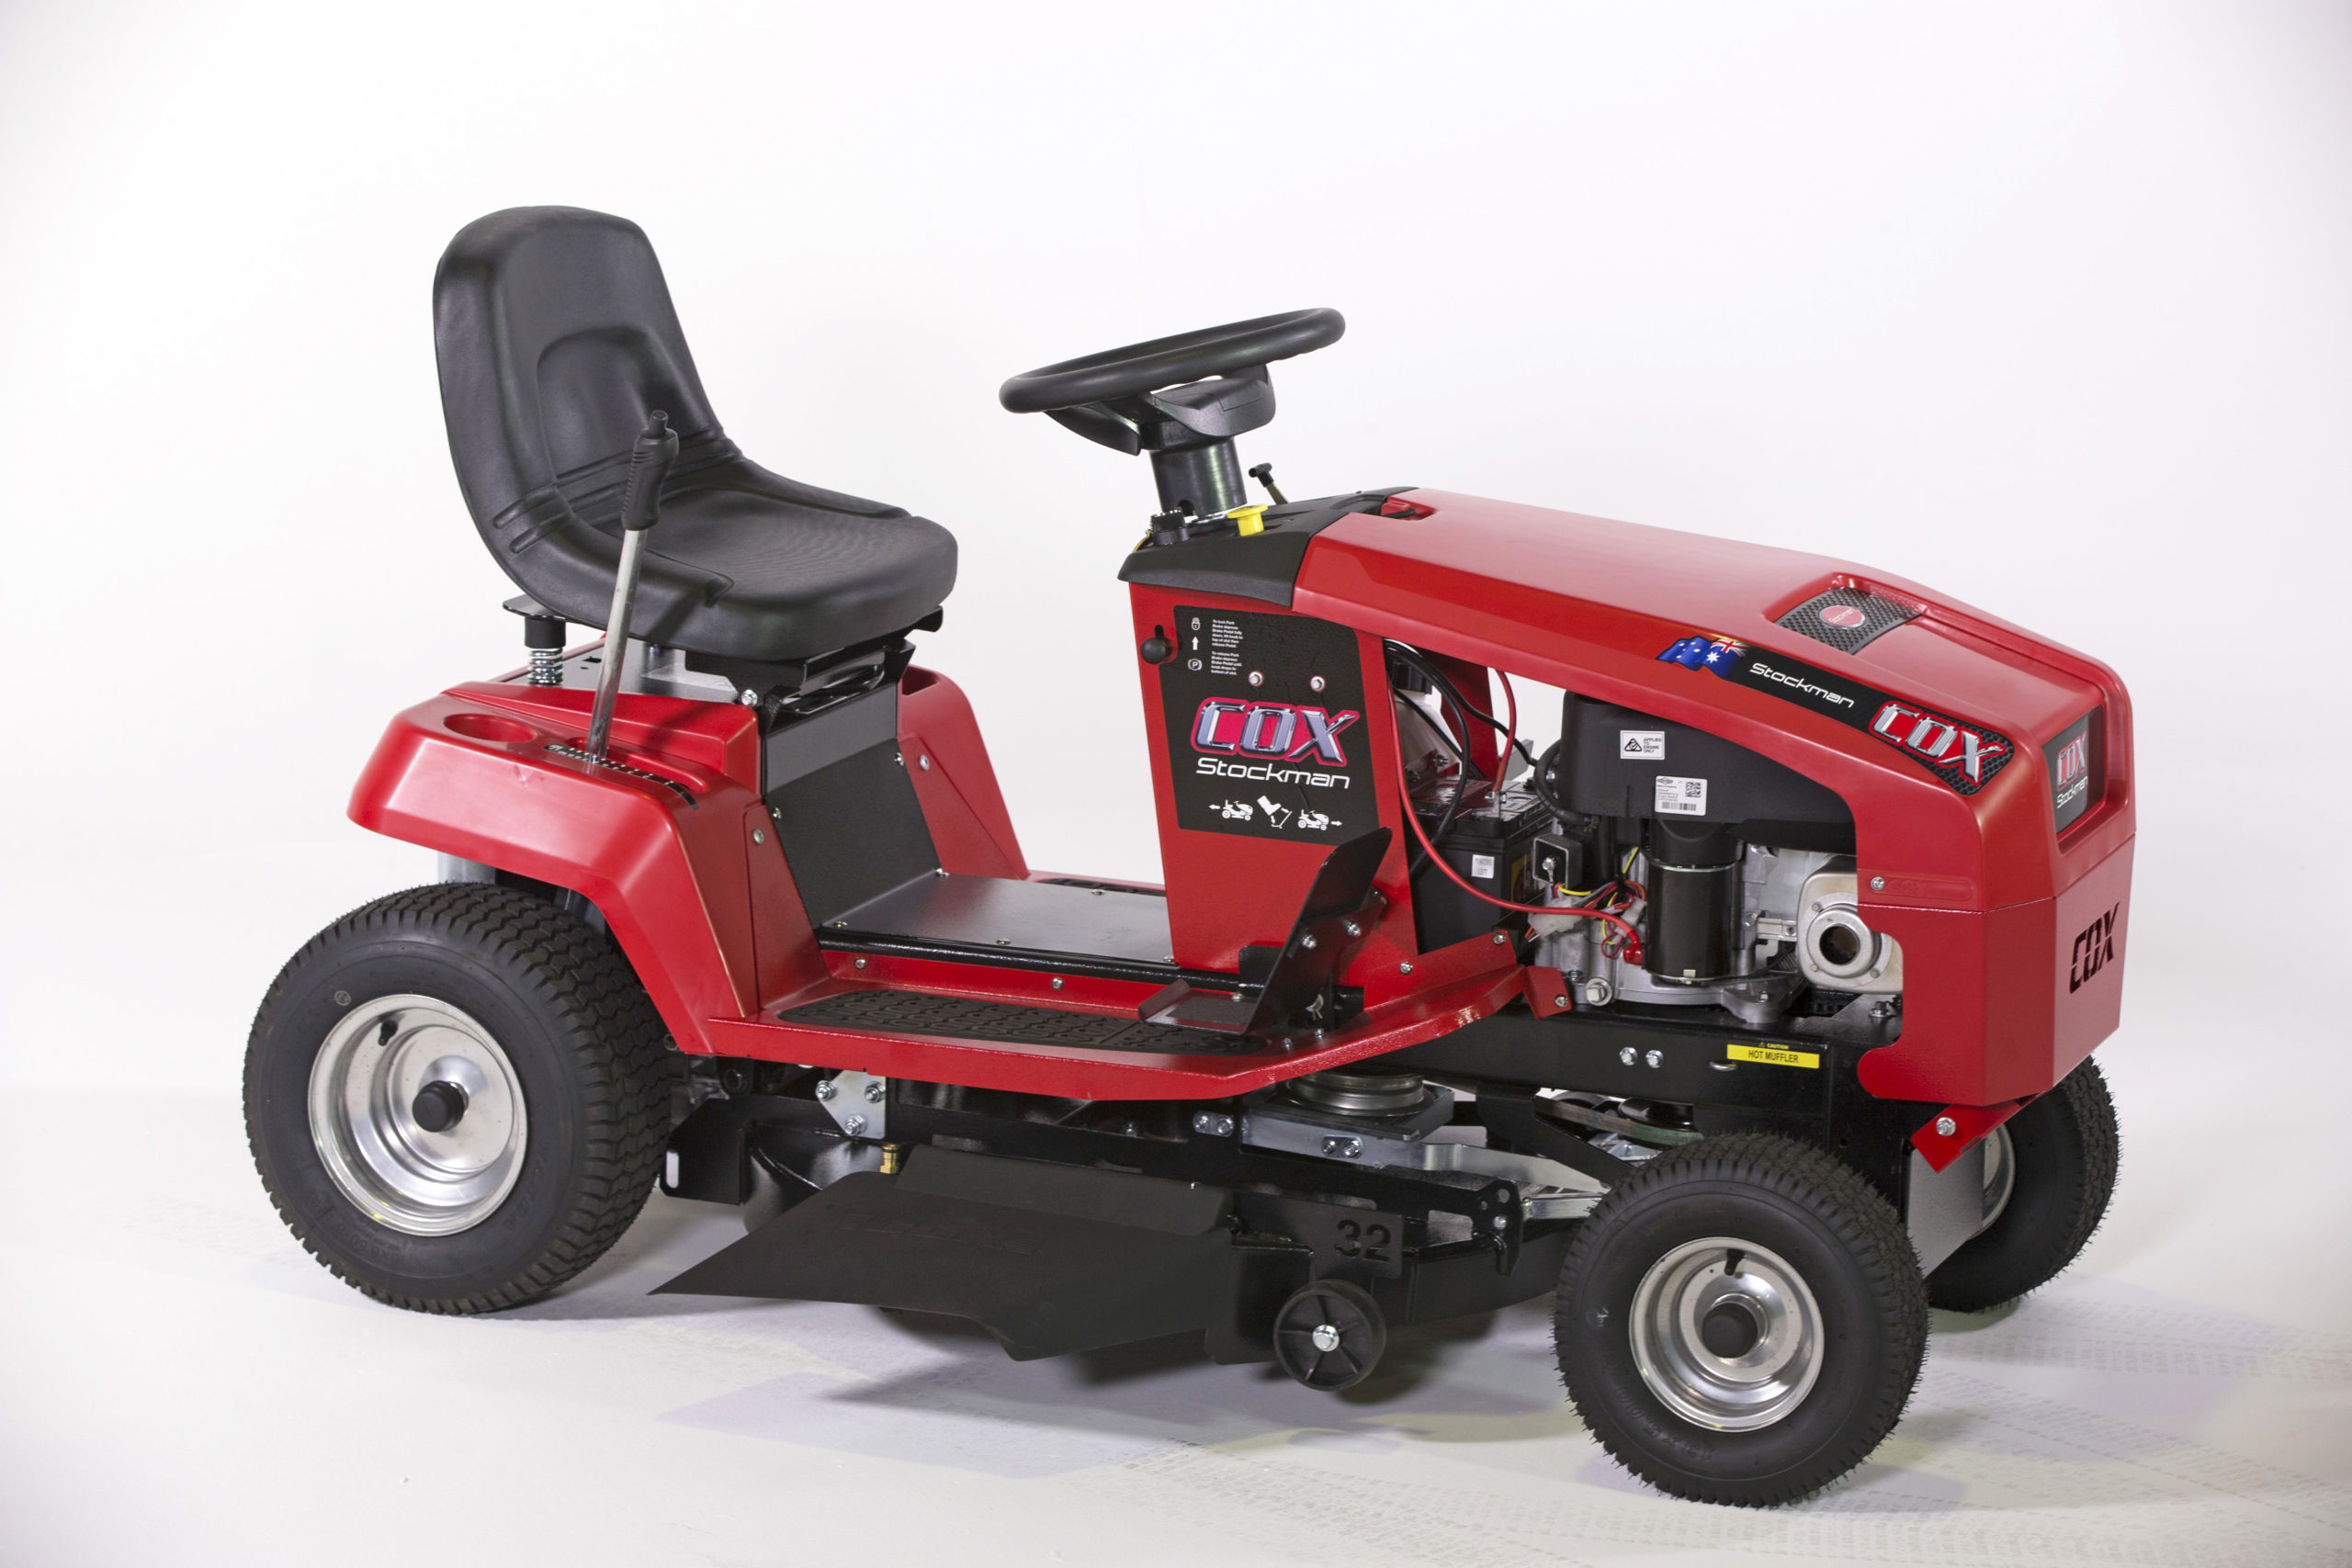 Image of the Cox Stockman 15C32 Ride on Lawn Mower